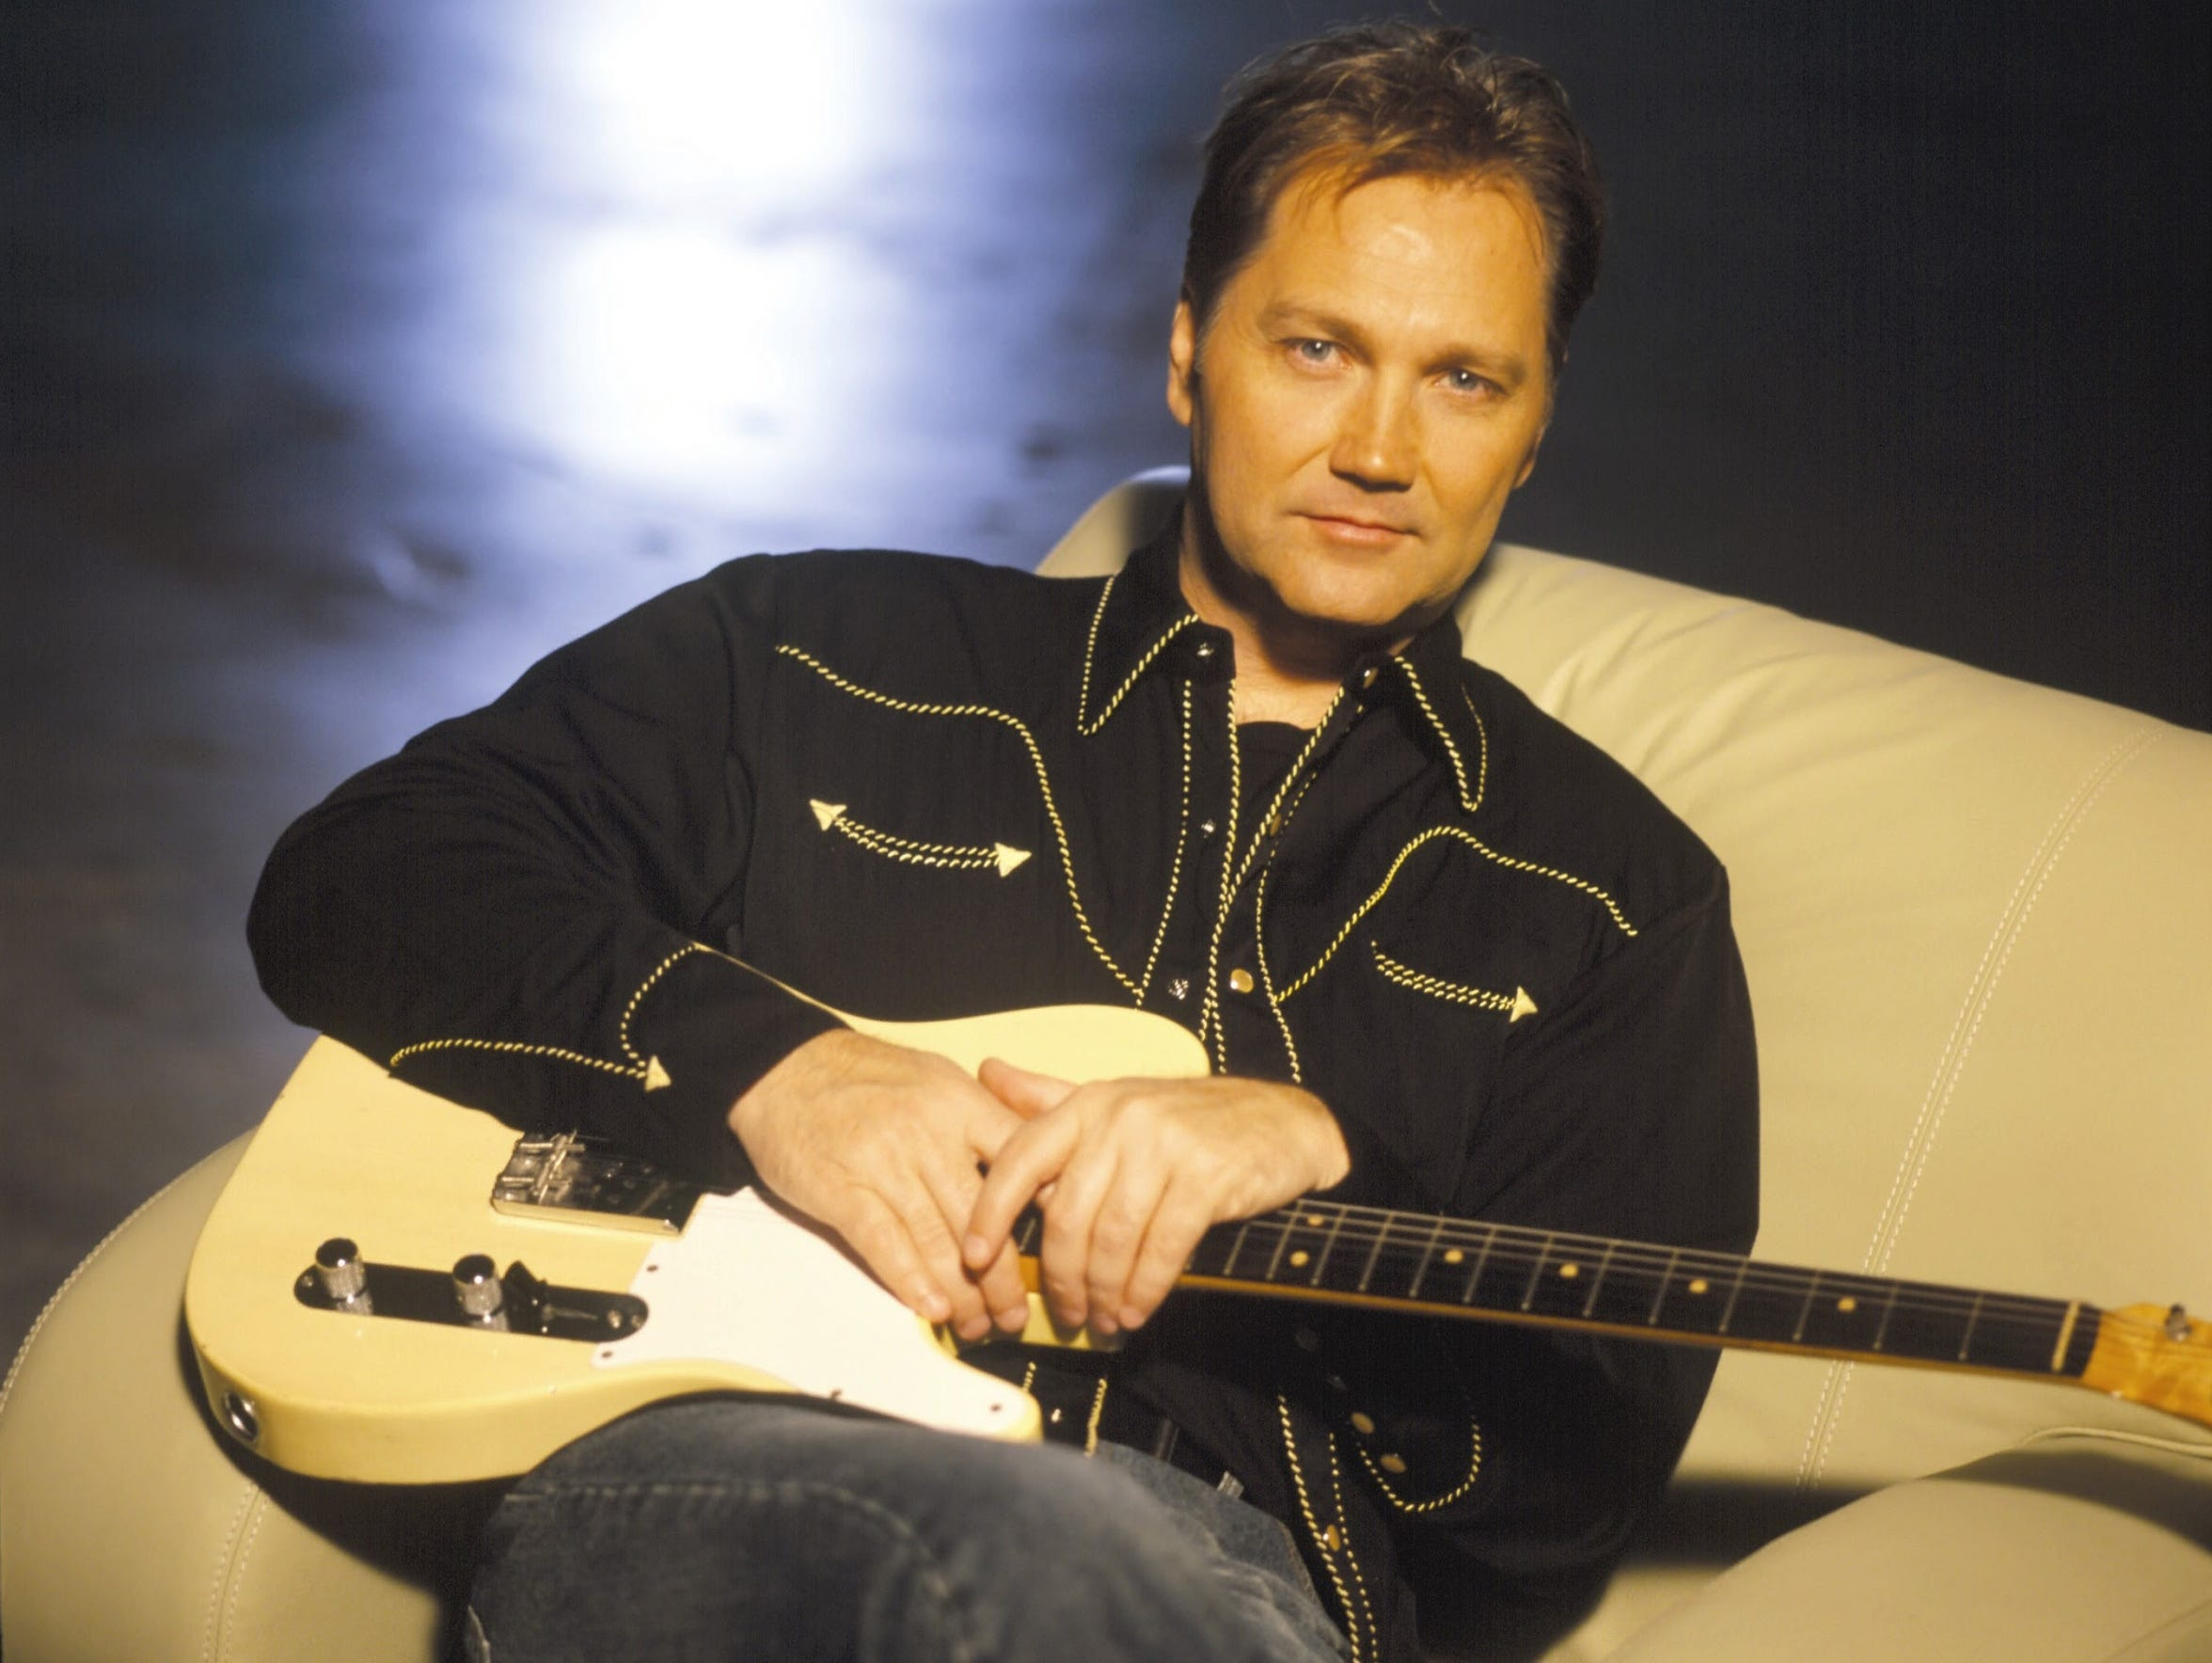 Steve Wariner won two Country Music Association awards